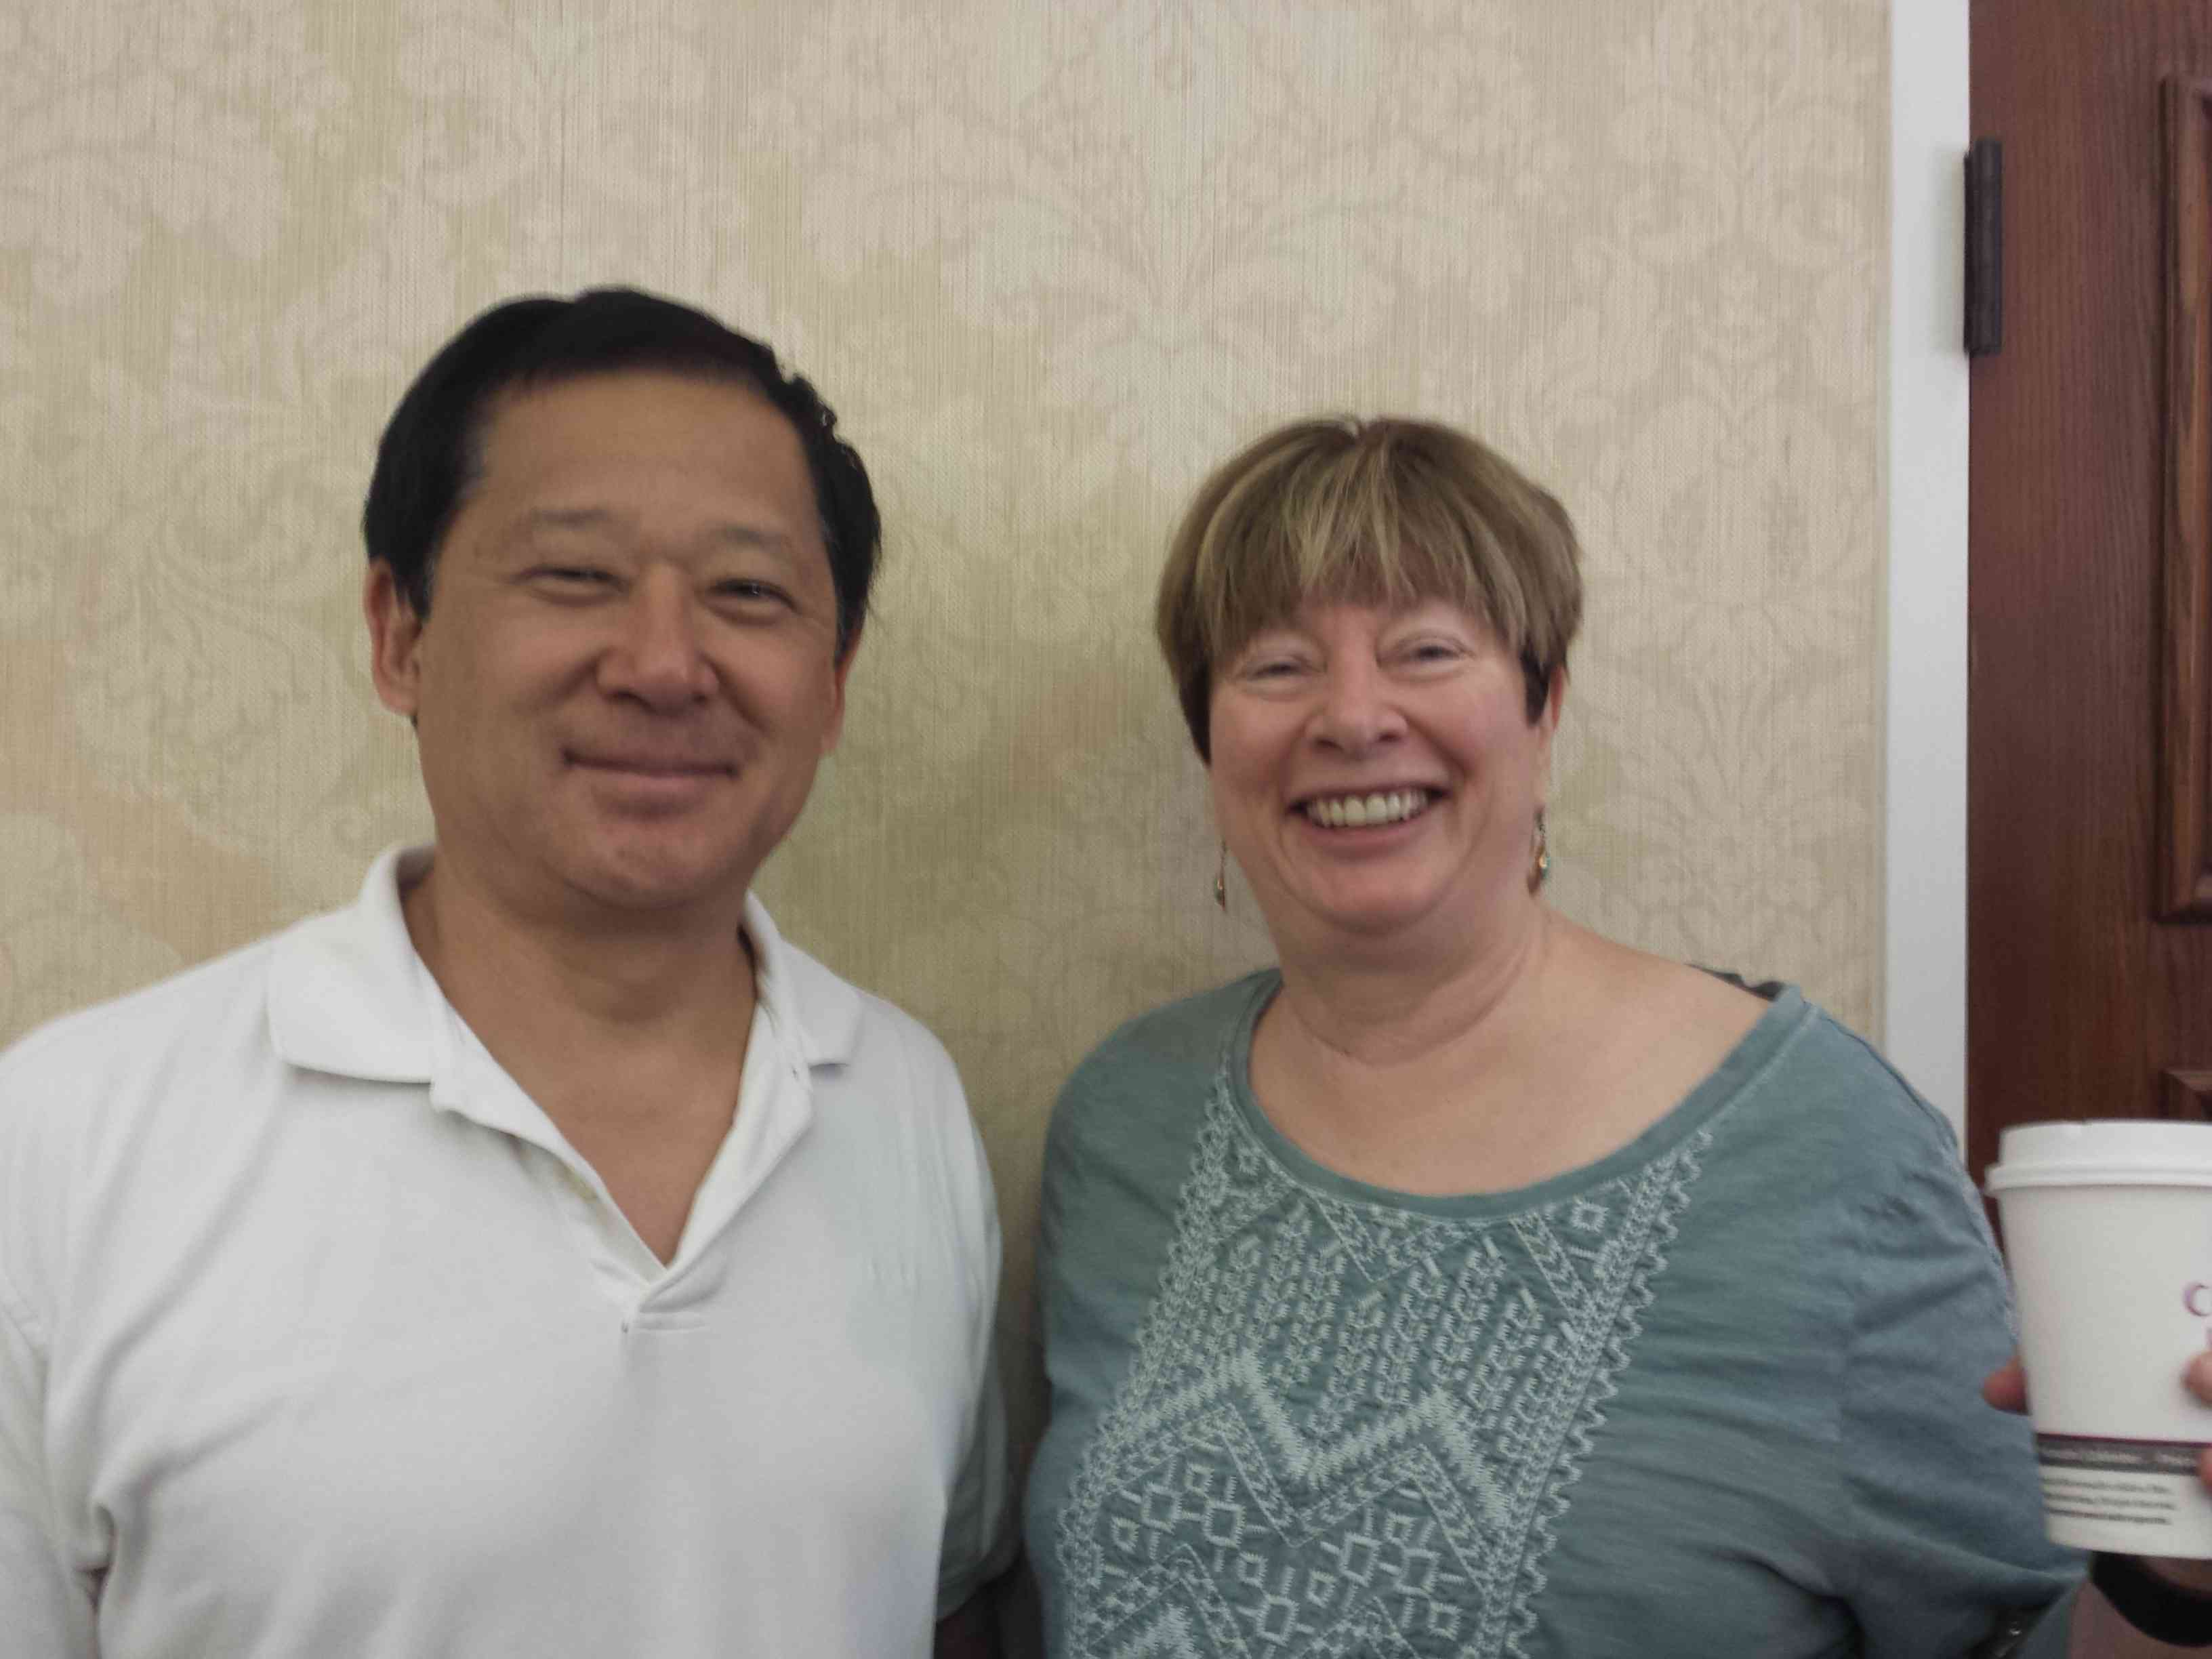 Sat. Swiss Mark Itabashi Newport Beach, CA and Linda Lewis Las Vegas, NV, (missing Douglas Doub, West Hartford, CT, Linda Lewis, Las Vegas, NV)